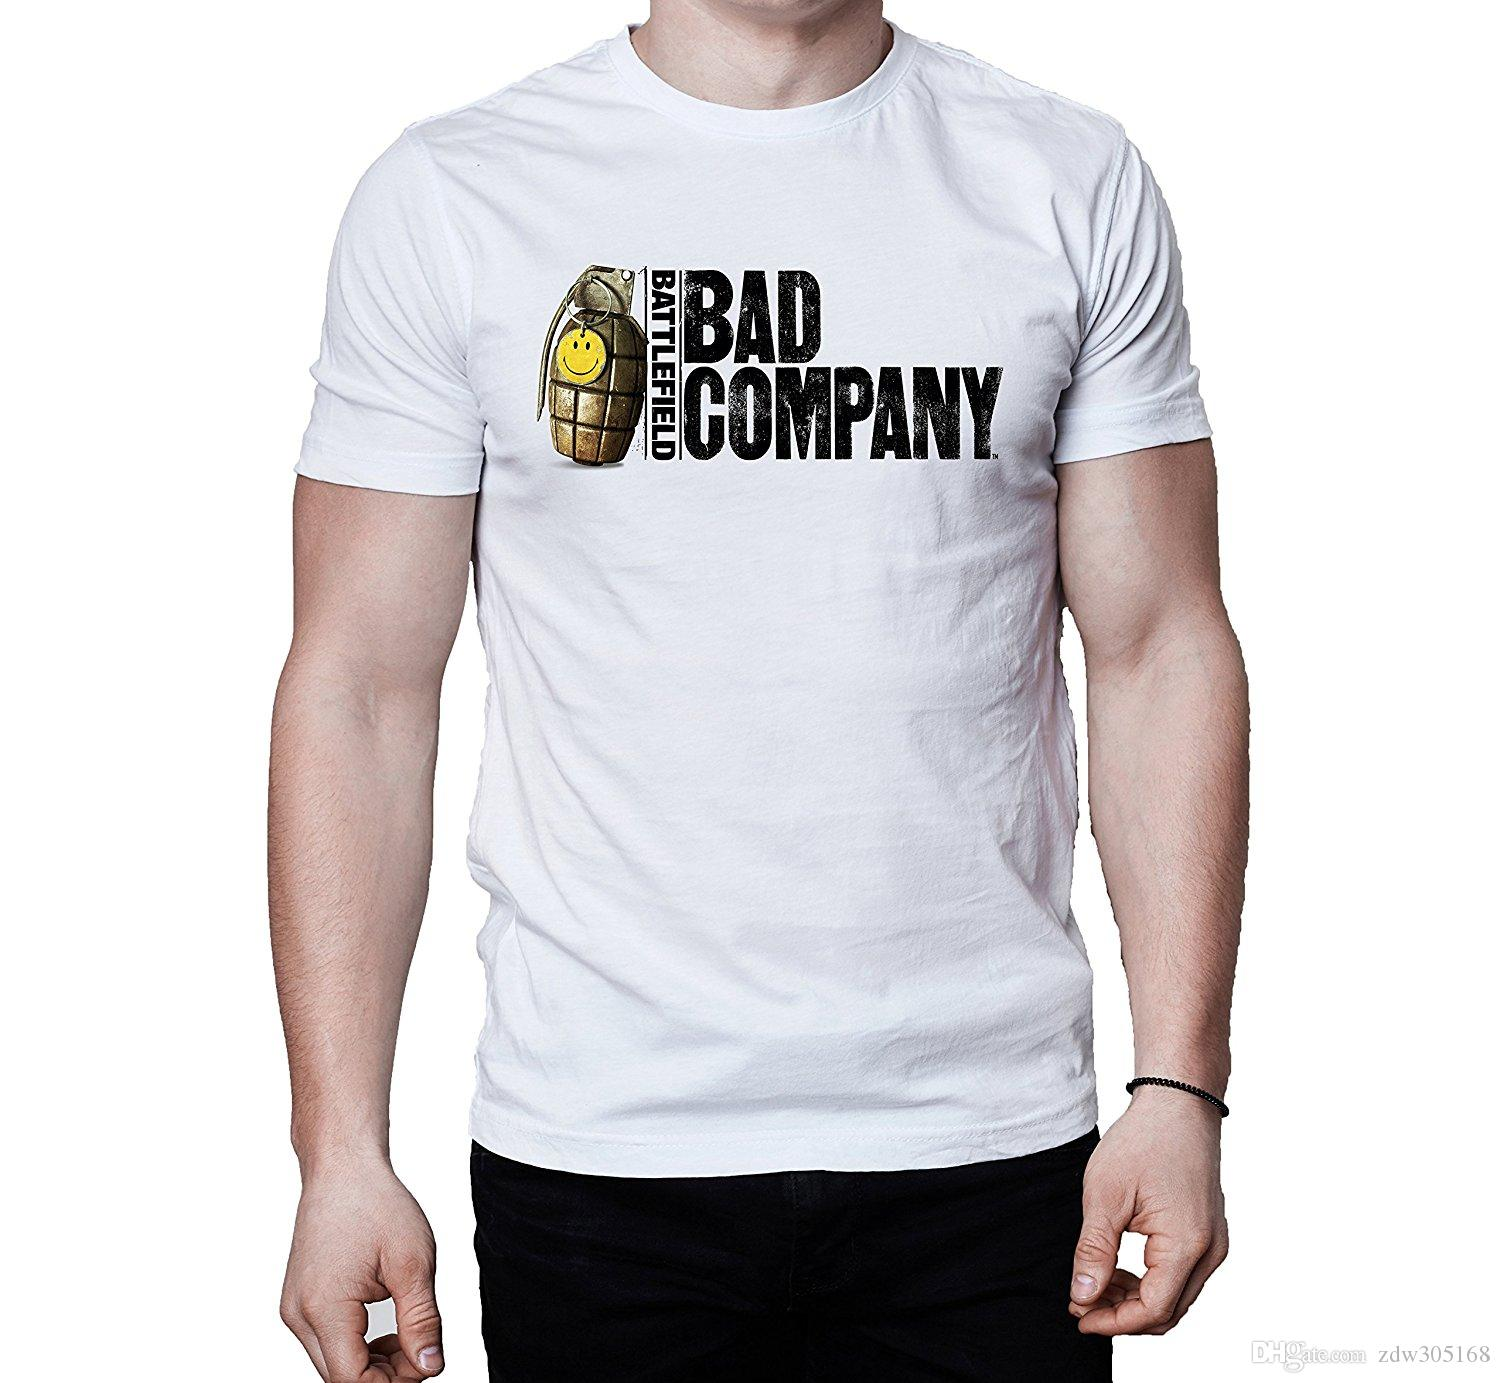 Cheap logo shirts south park t shirts for Logo t shirts for business